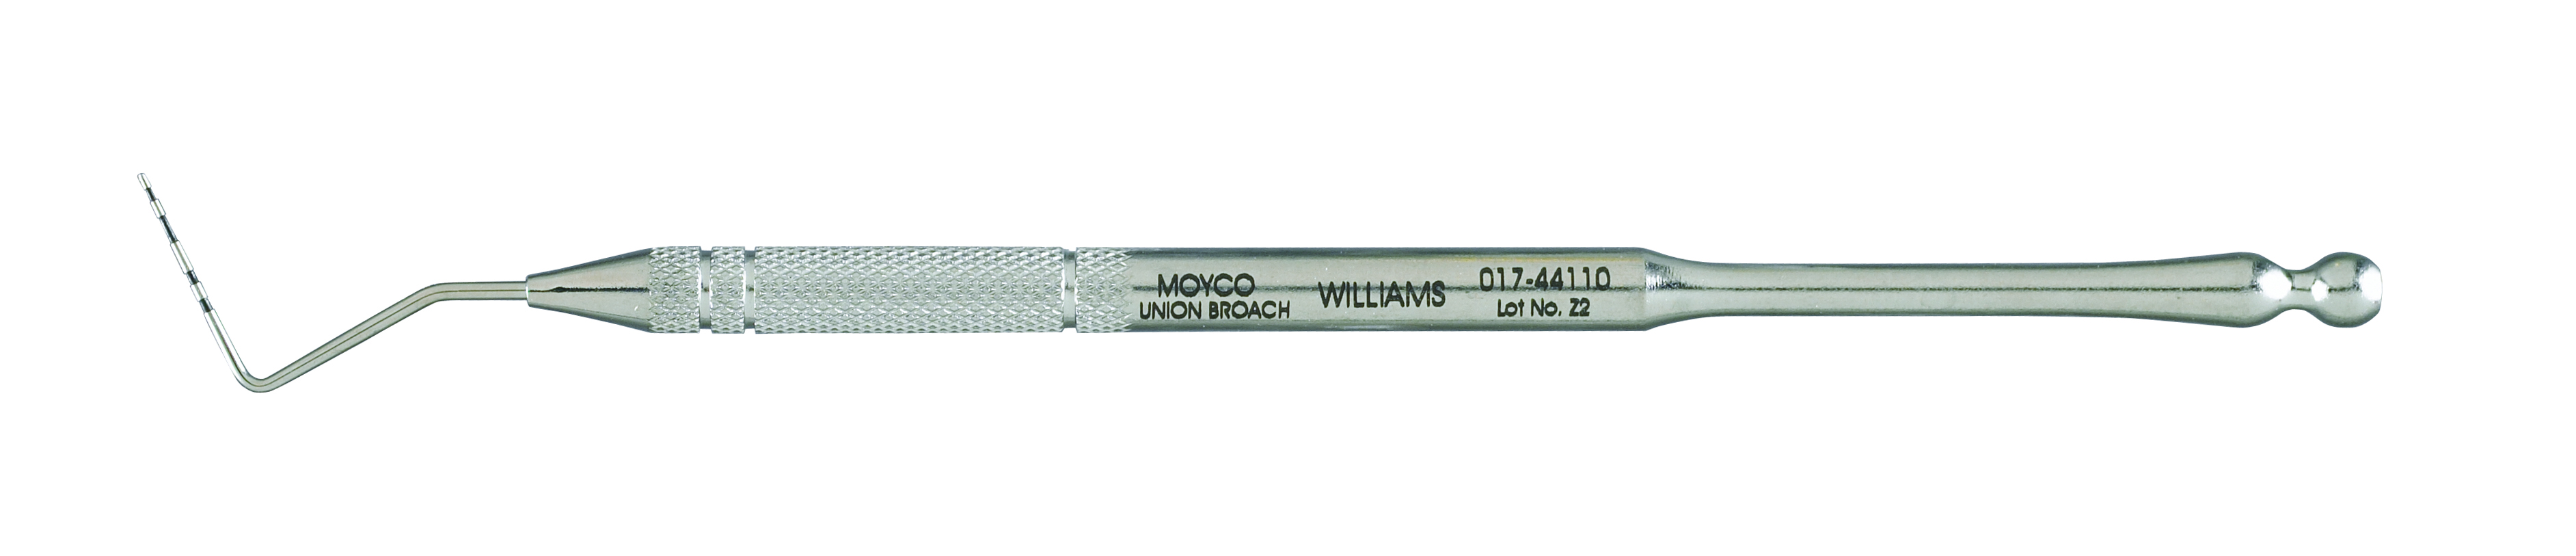 perio-probe-williams-017-44110-miltex.jpg